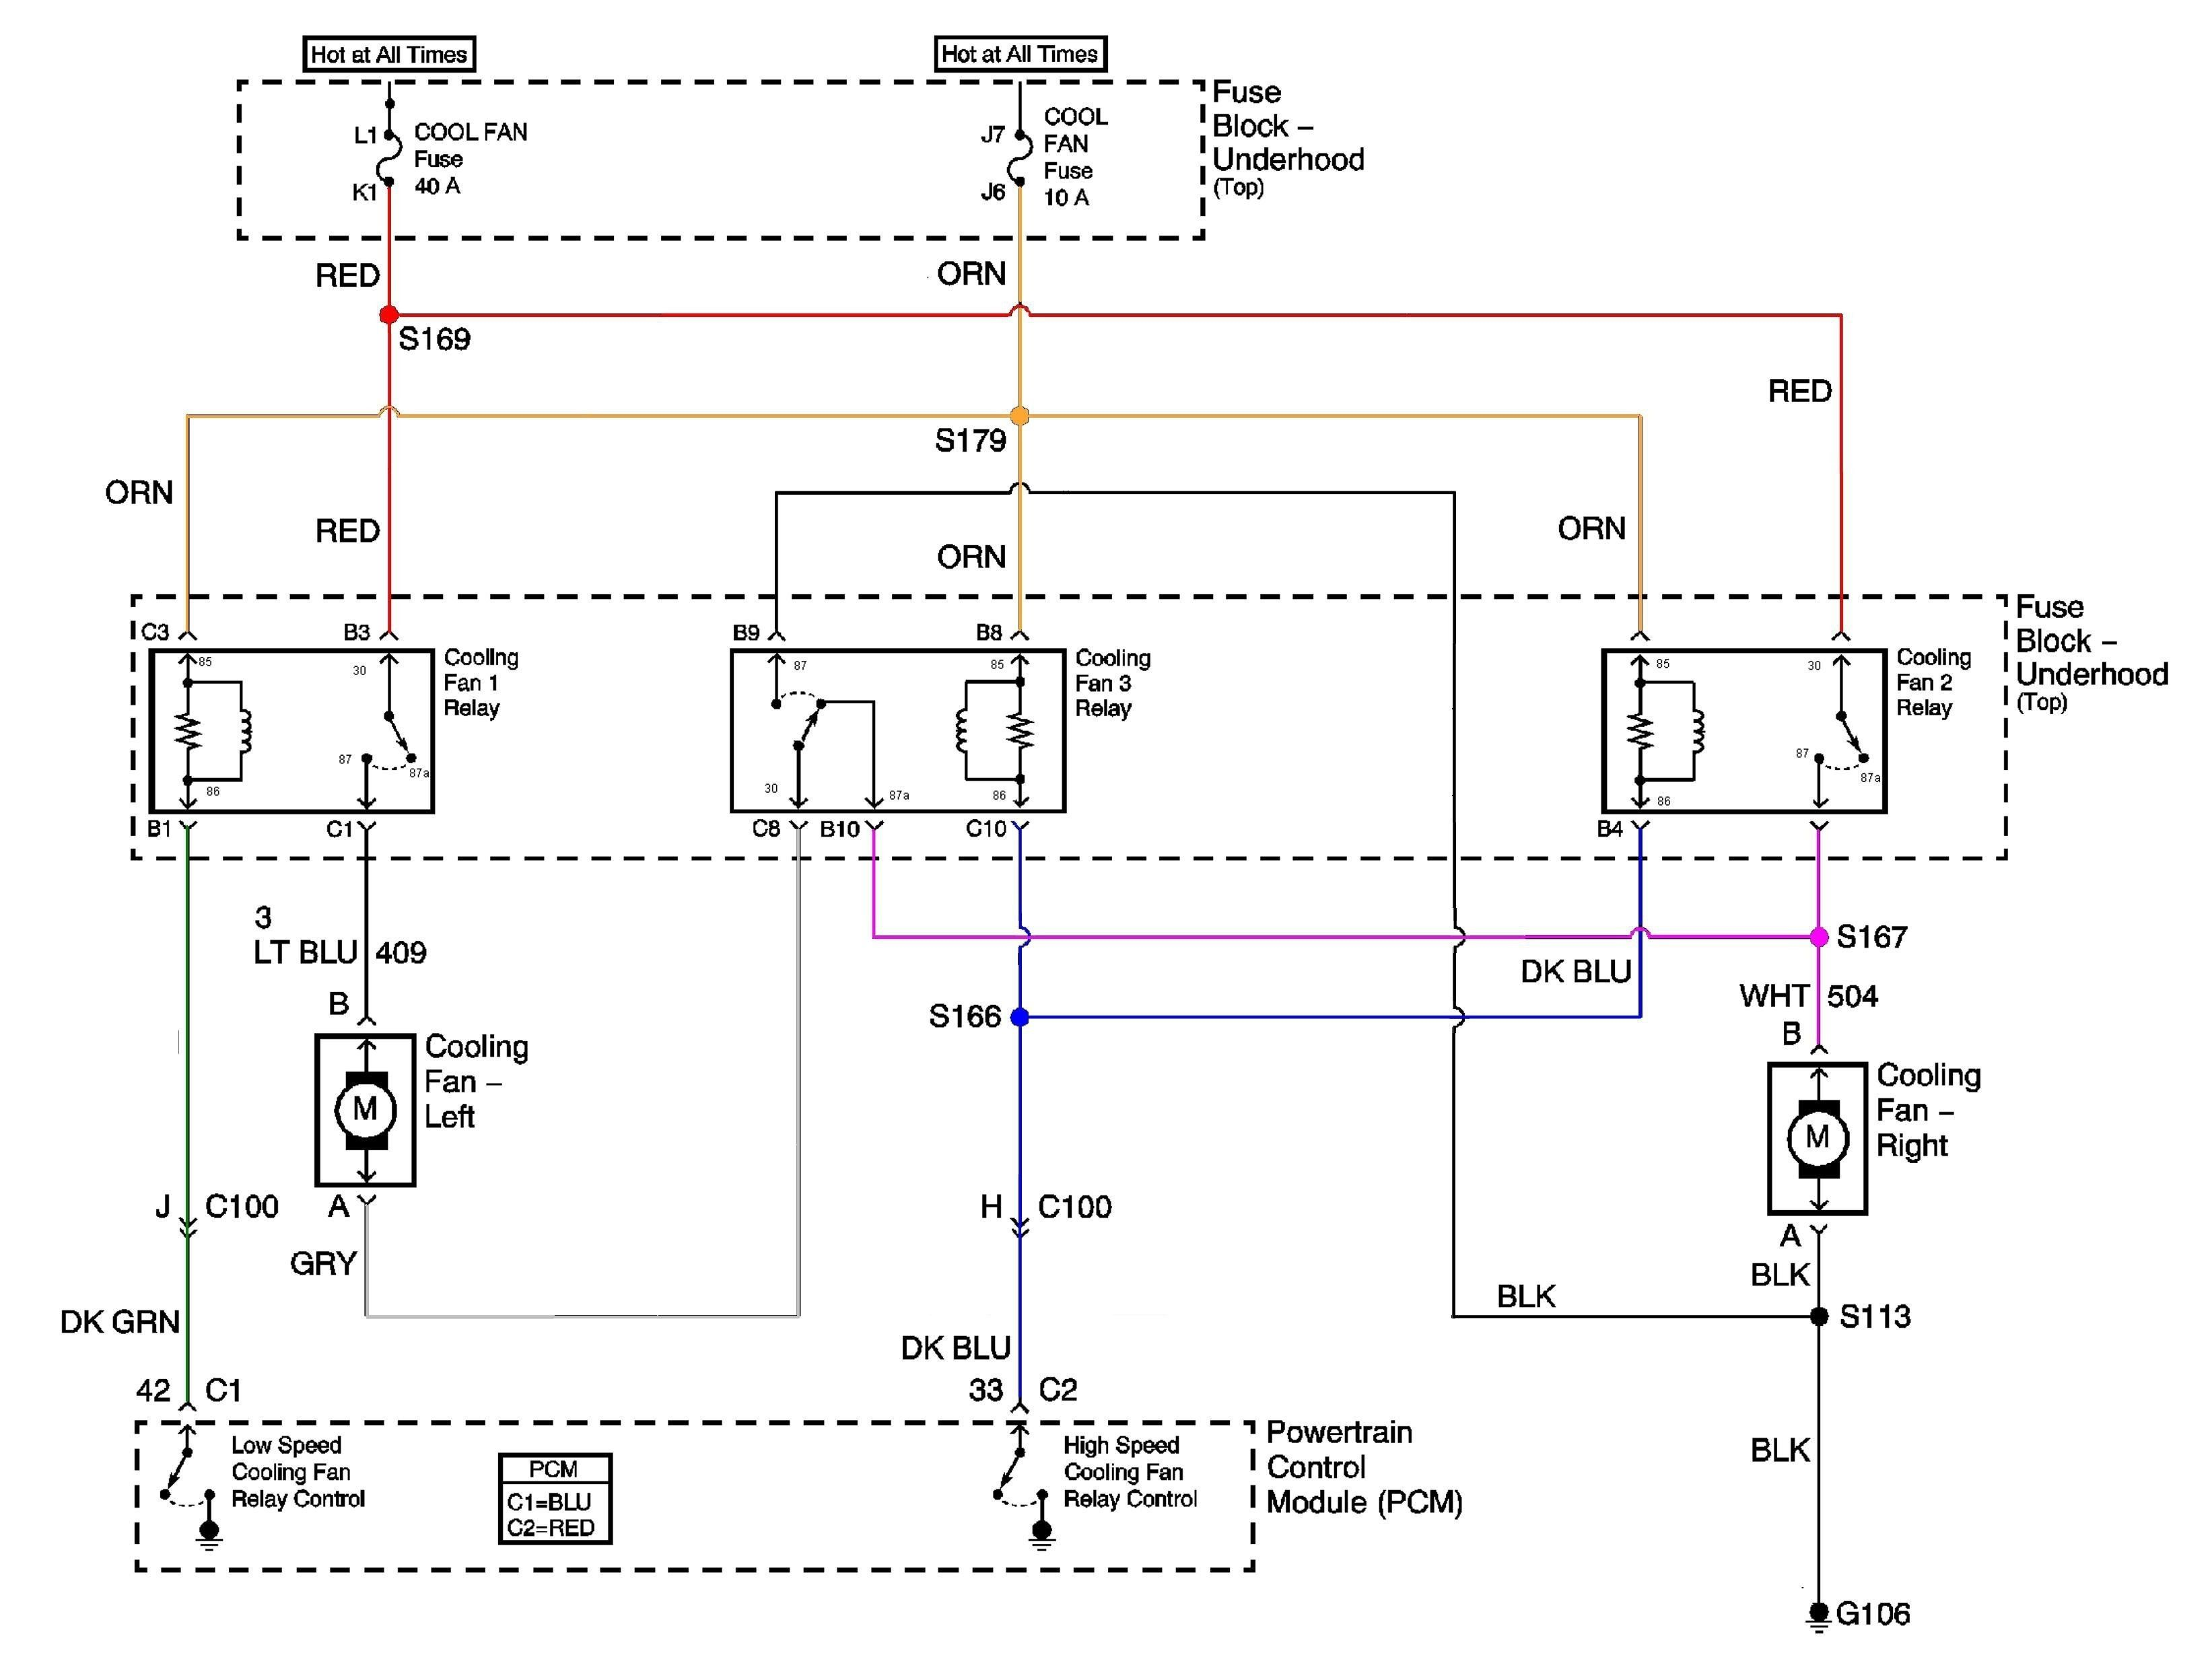 Unique Wiring Diagram For Electric Fan Relay Diagram Diagramsample Diagramtemplate Wiringdiagram Diagramchart Workshee Diagram Electric Fan Diagram Chart